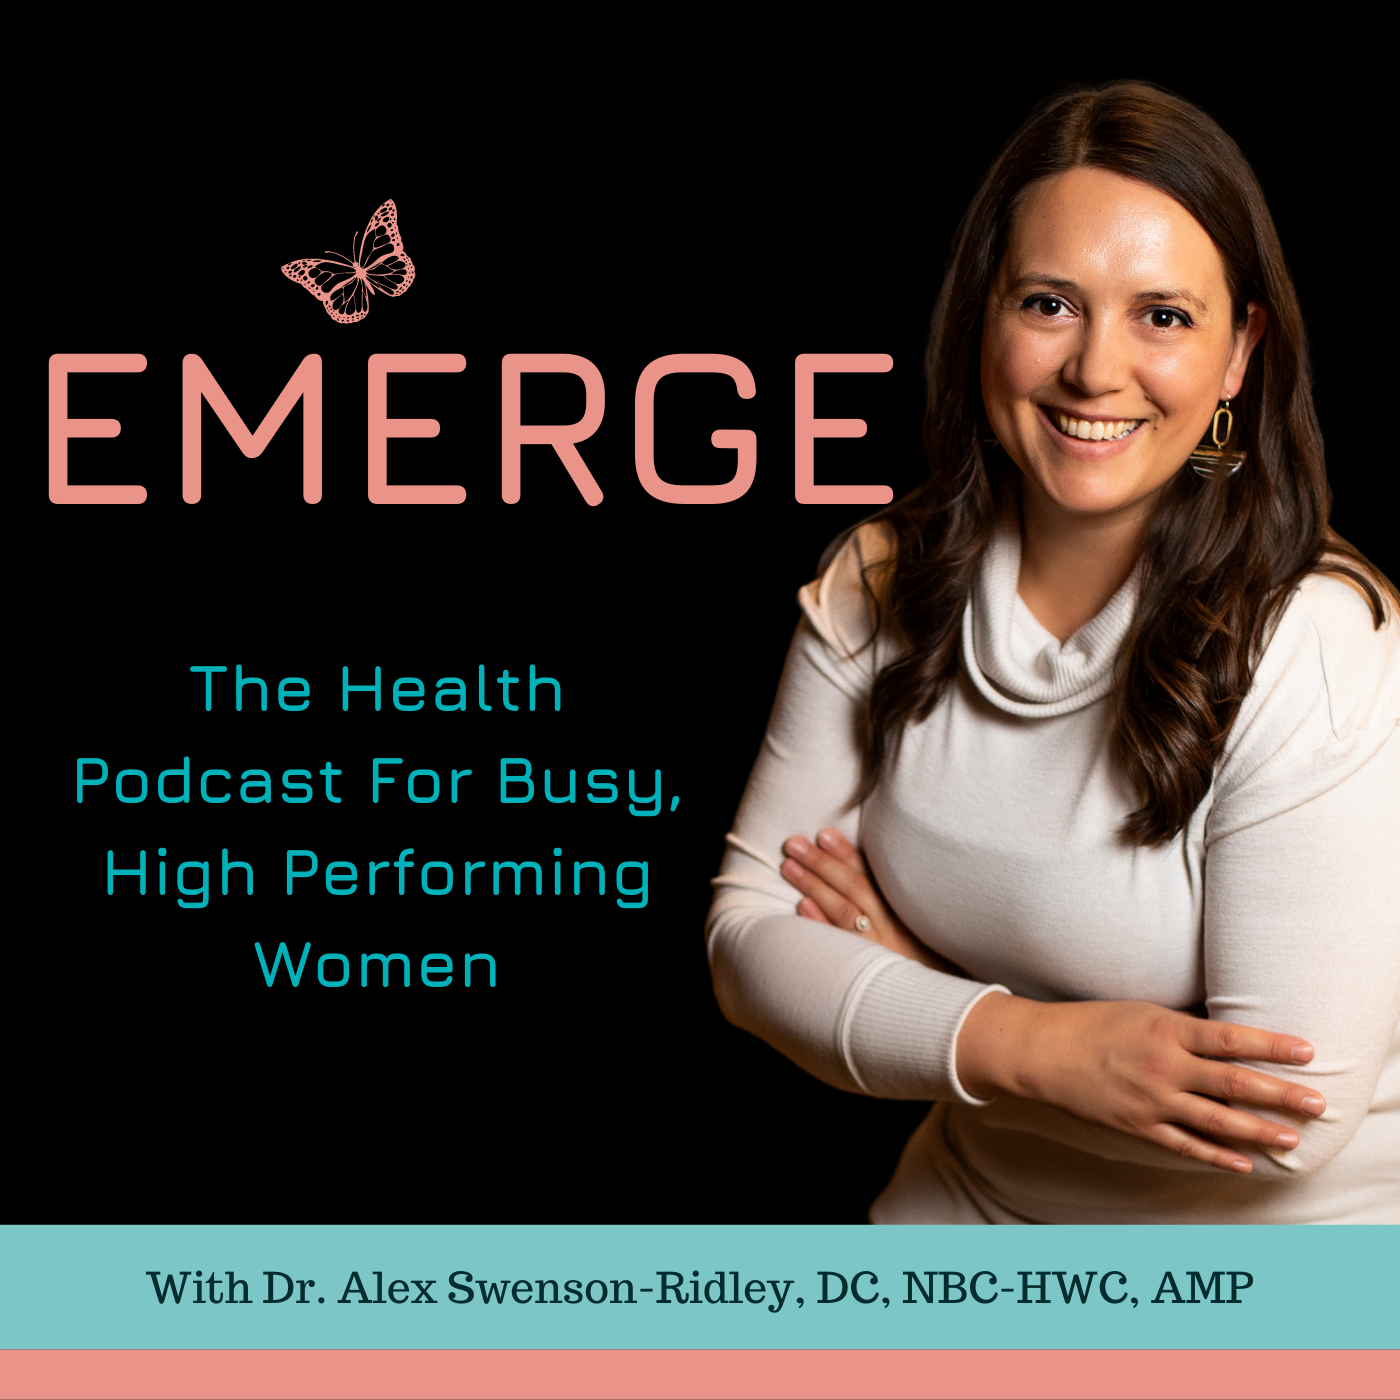 Show artwork for Emerge: The Health Podcast for Busy, High Performing Women